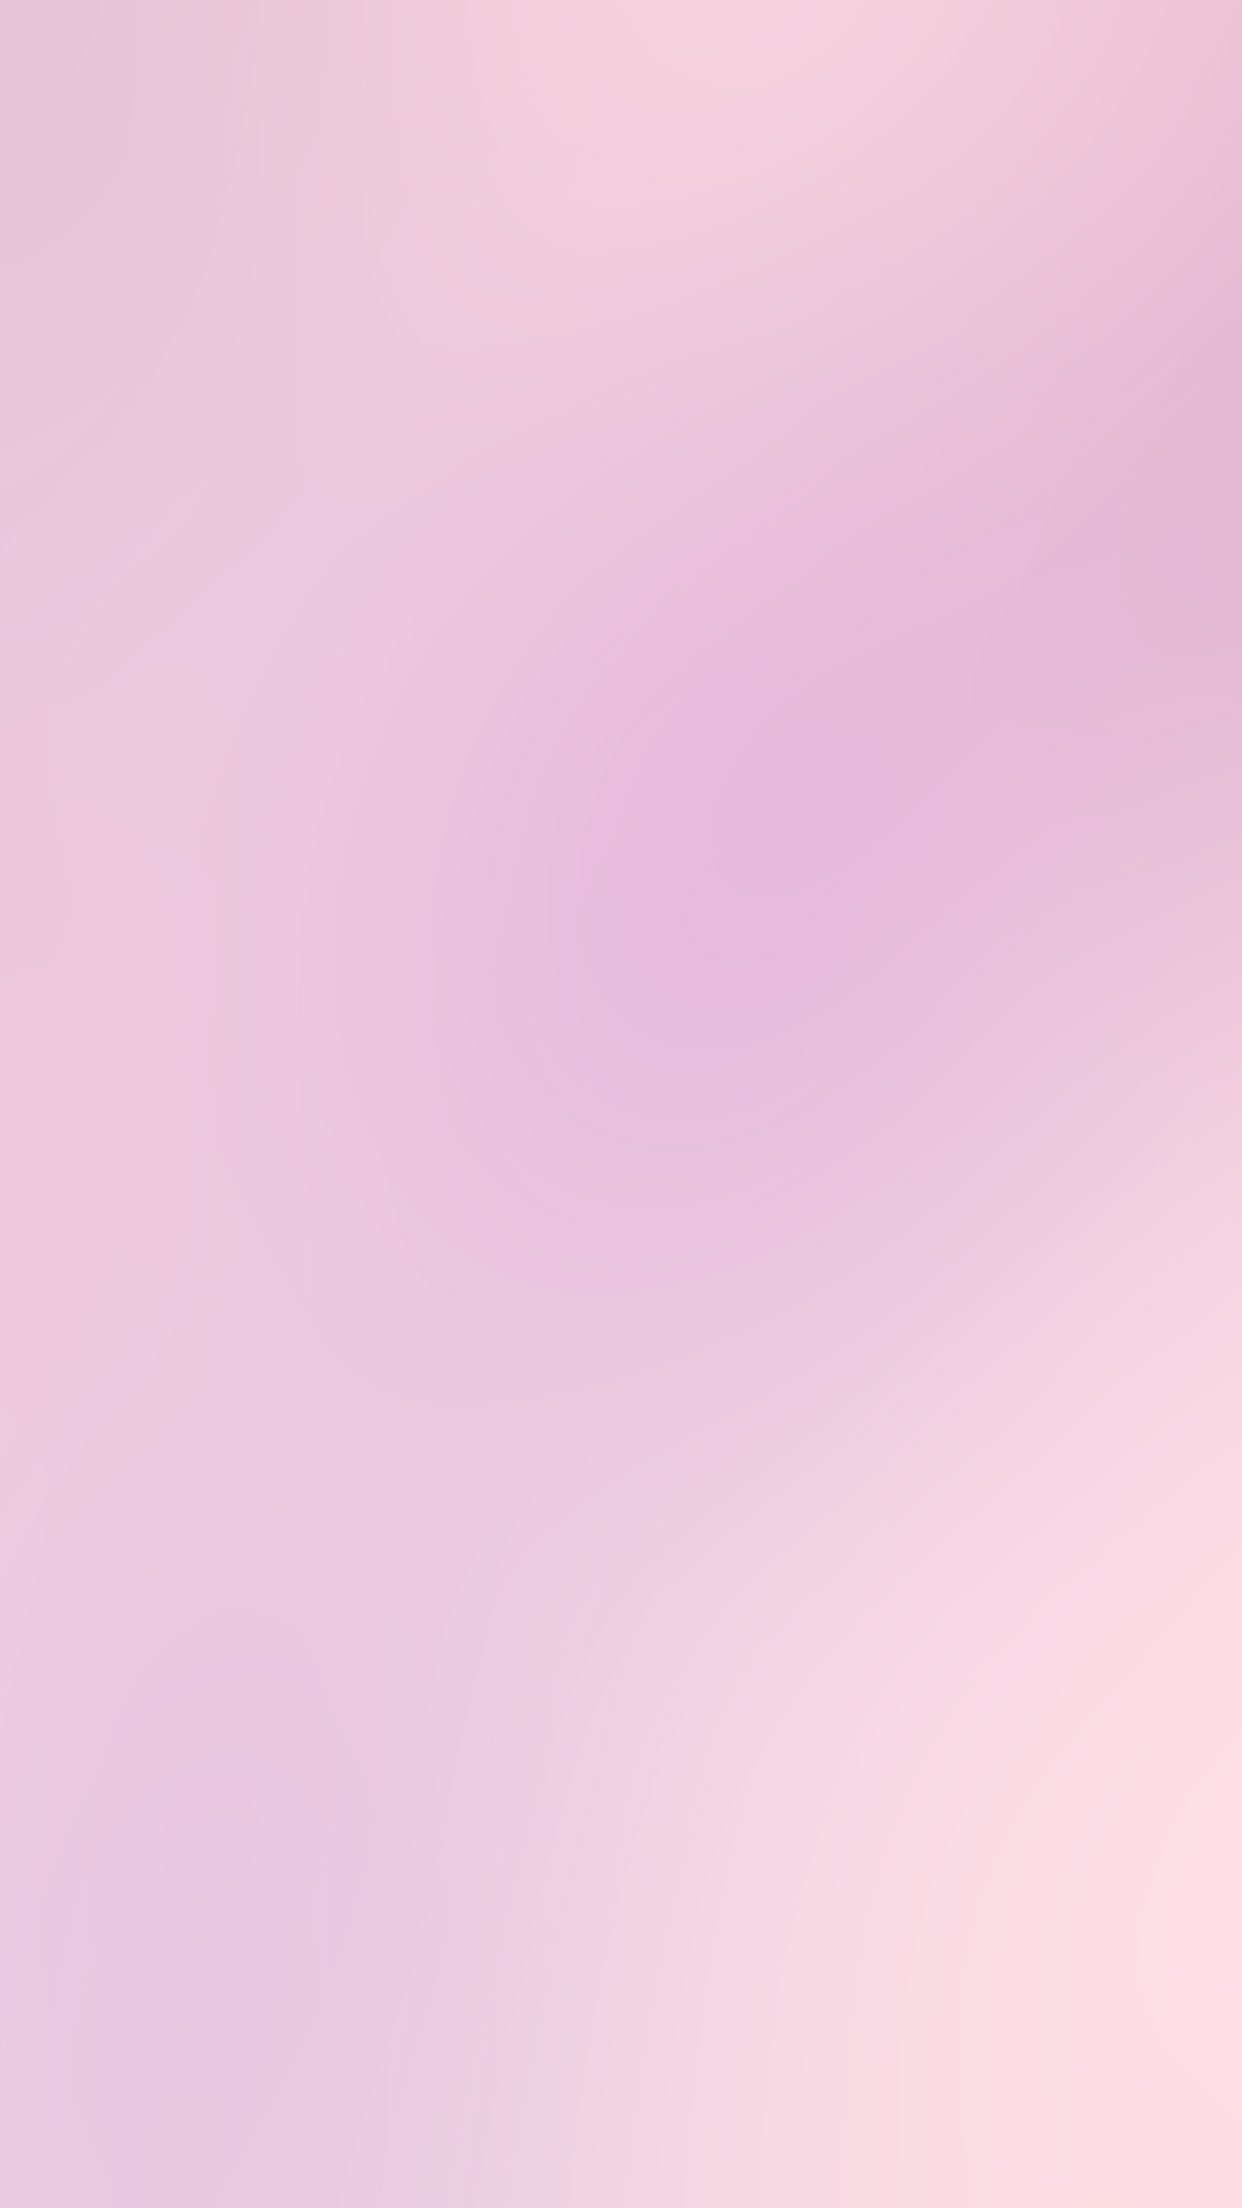 Cute Small Baby Wallpapers Hd Si09 Soft Pink Baby Gradation Blur Wallpaper